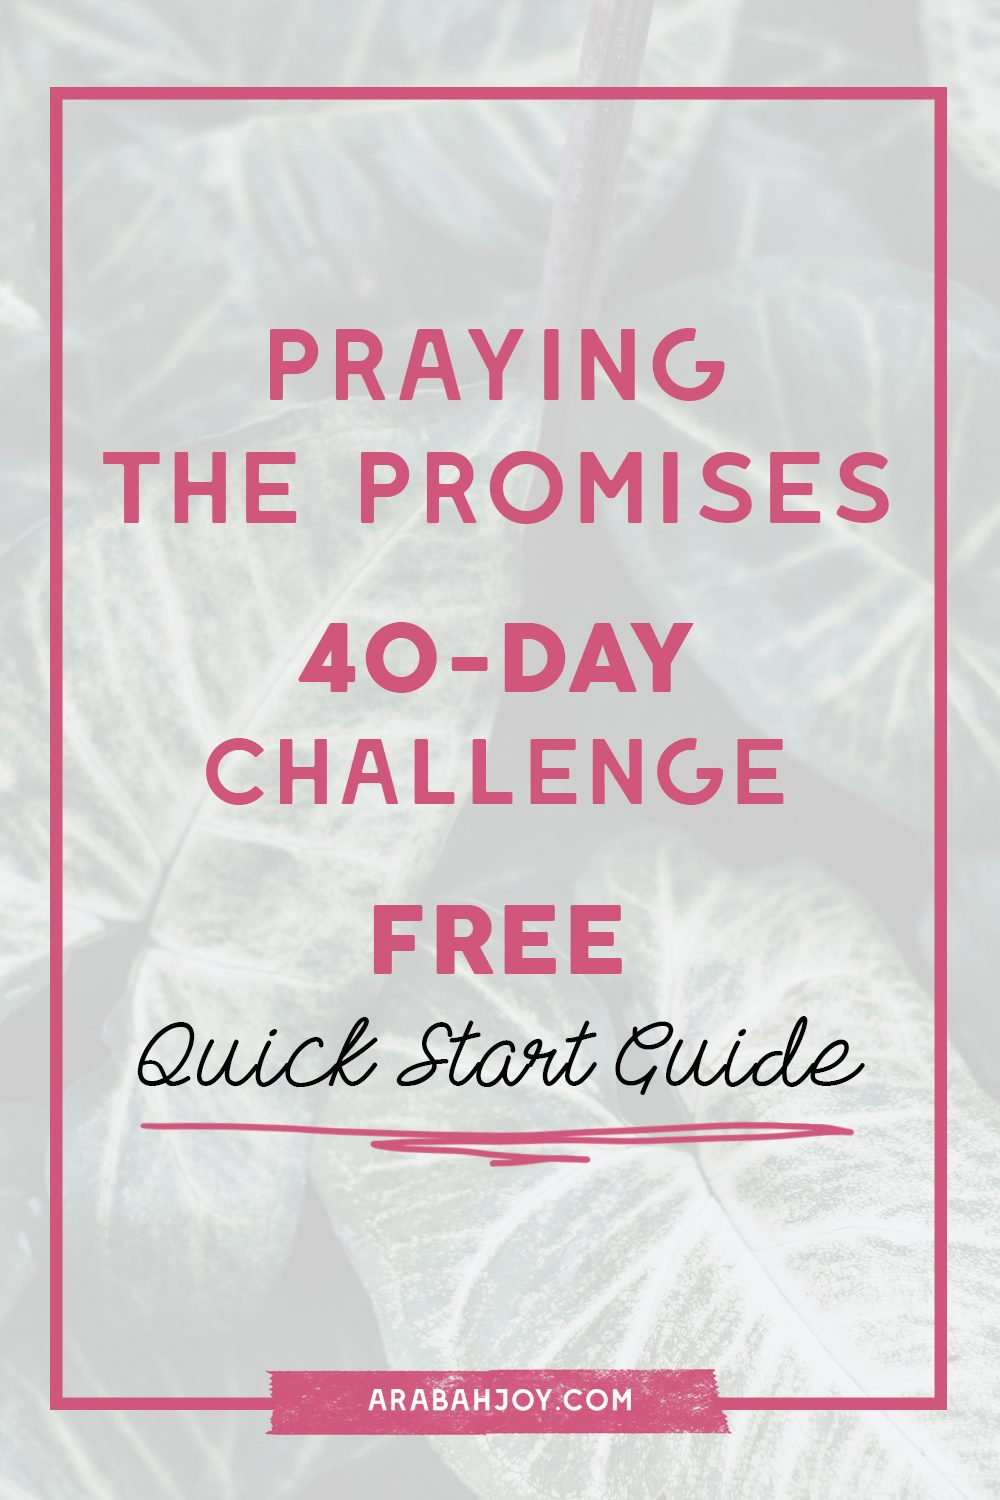 Grab this Quick Start Guide and start Praying the Promises  of God today - 40 - Day Challenge